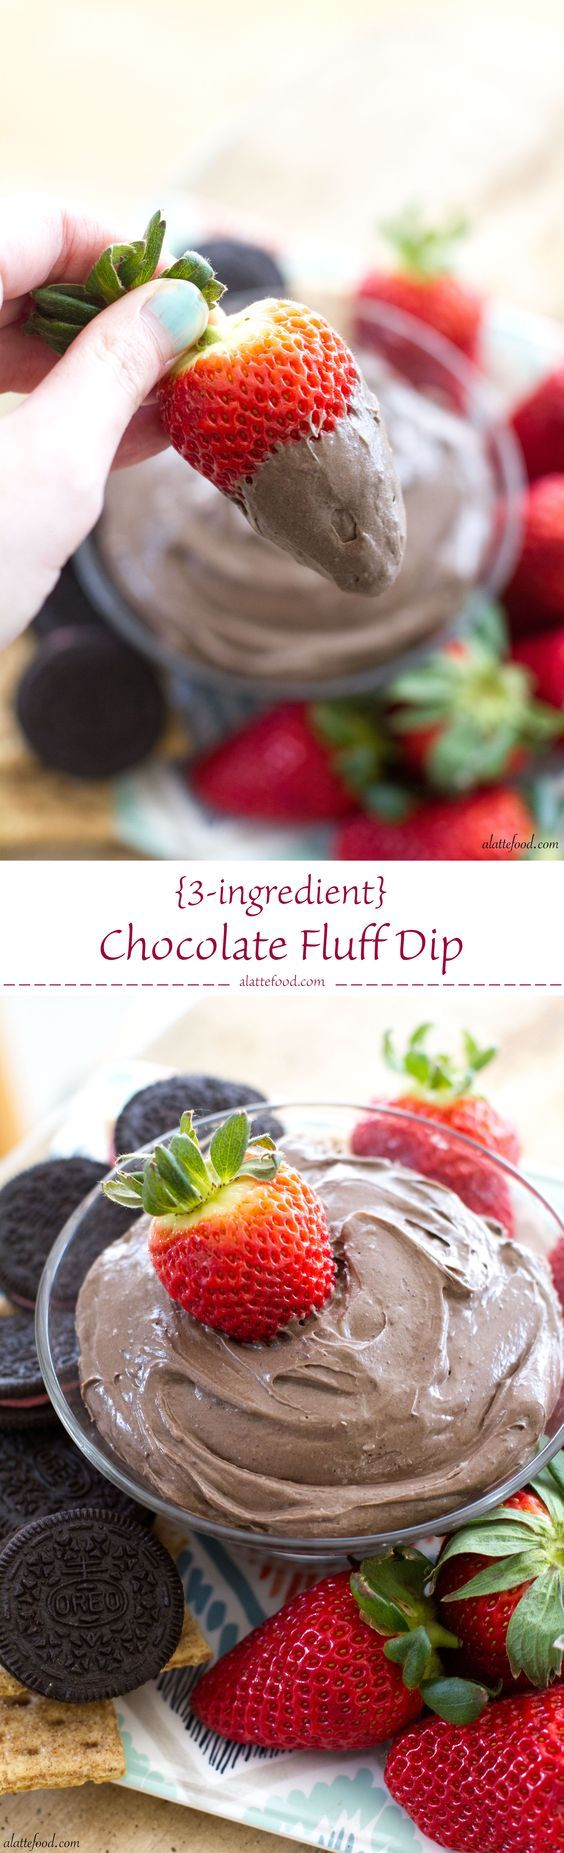 {3-ingredient} Chocolate Fluff Dip | {3-ingredient} Chocolate Fluff Dip: This easy appetizer dip is made with only 3 ingredients and tastes like gold. It's the best.